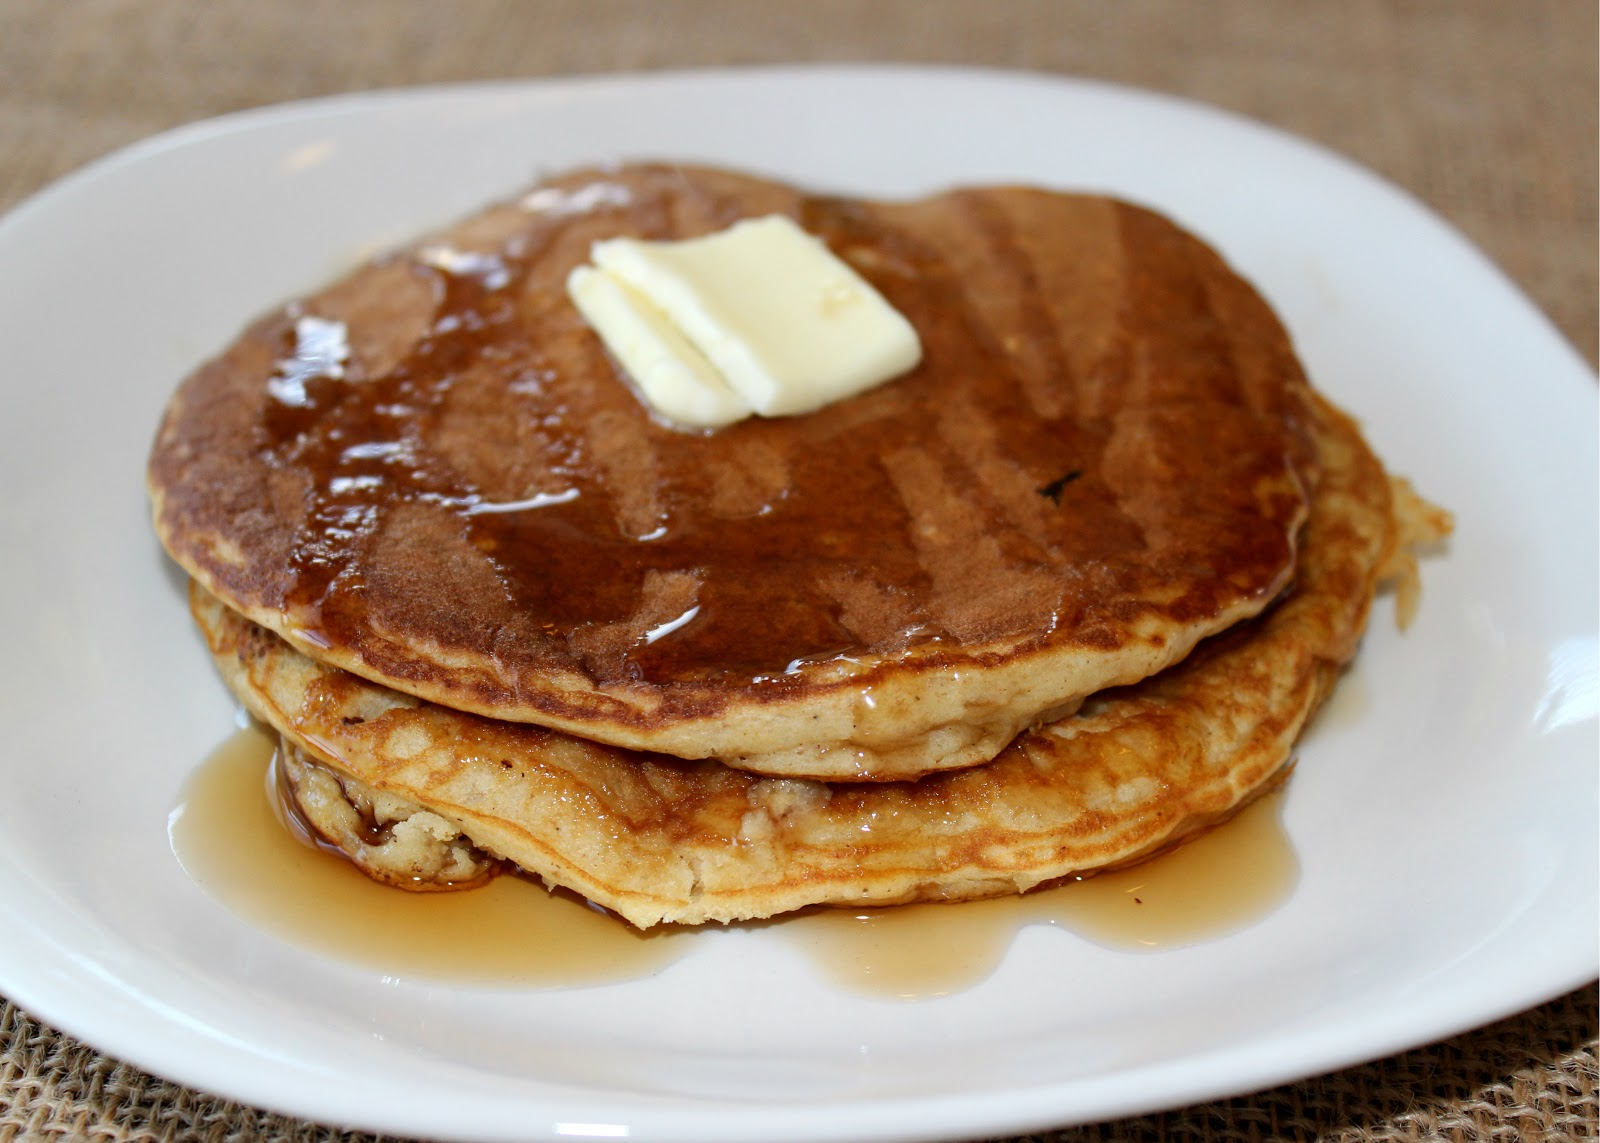 The pancakes are fluffy and airy. We drizzled them with a little bit ...